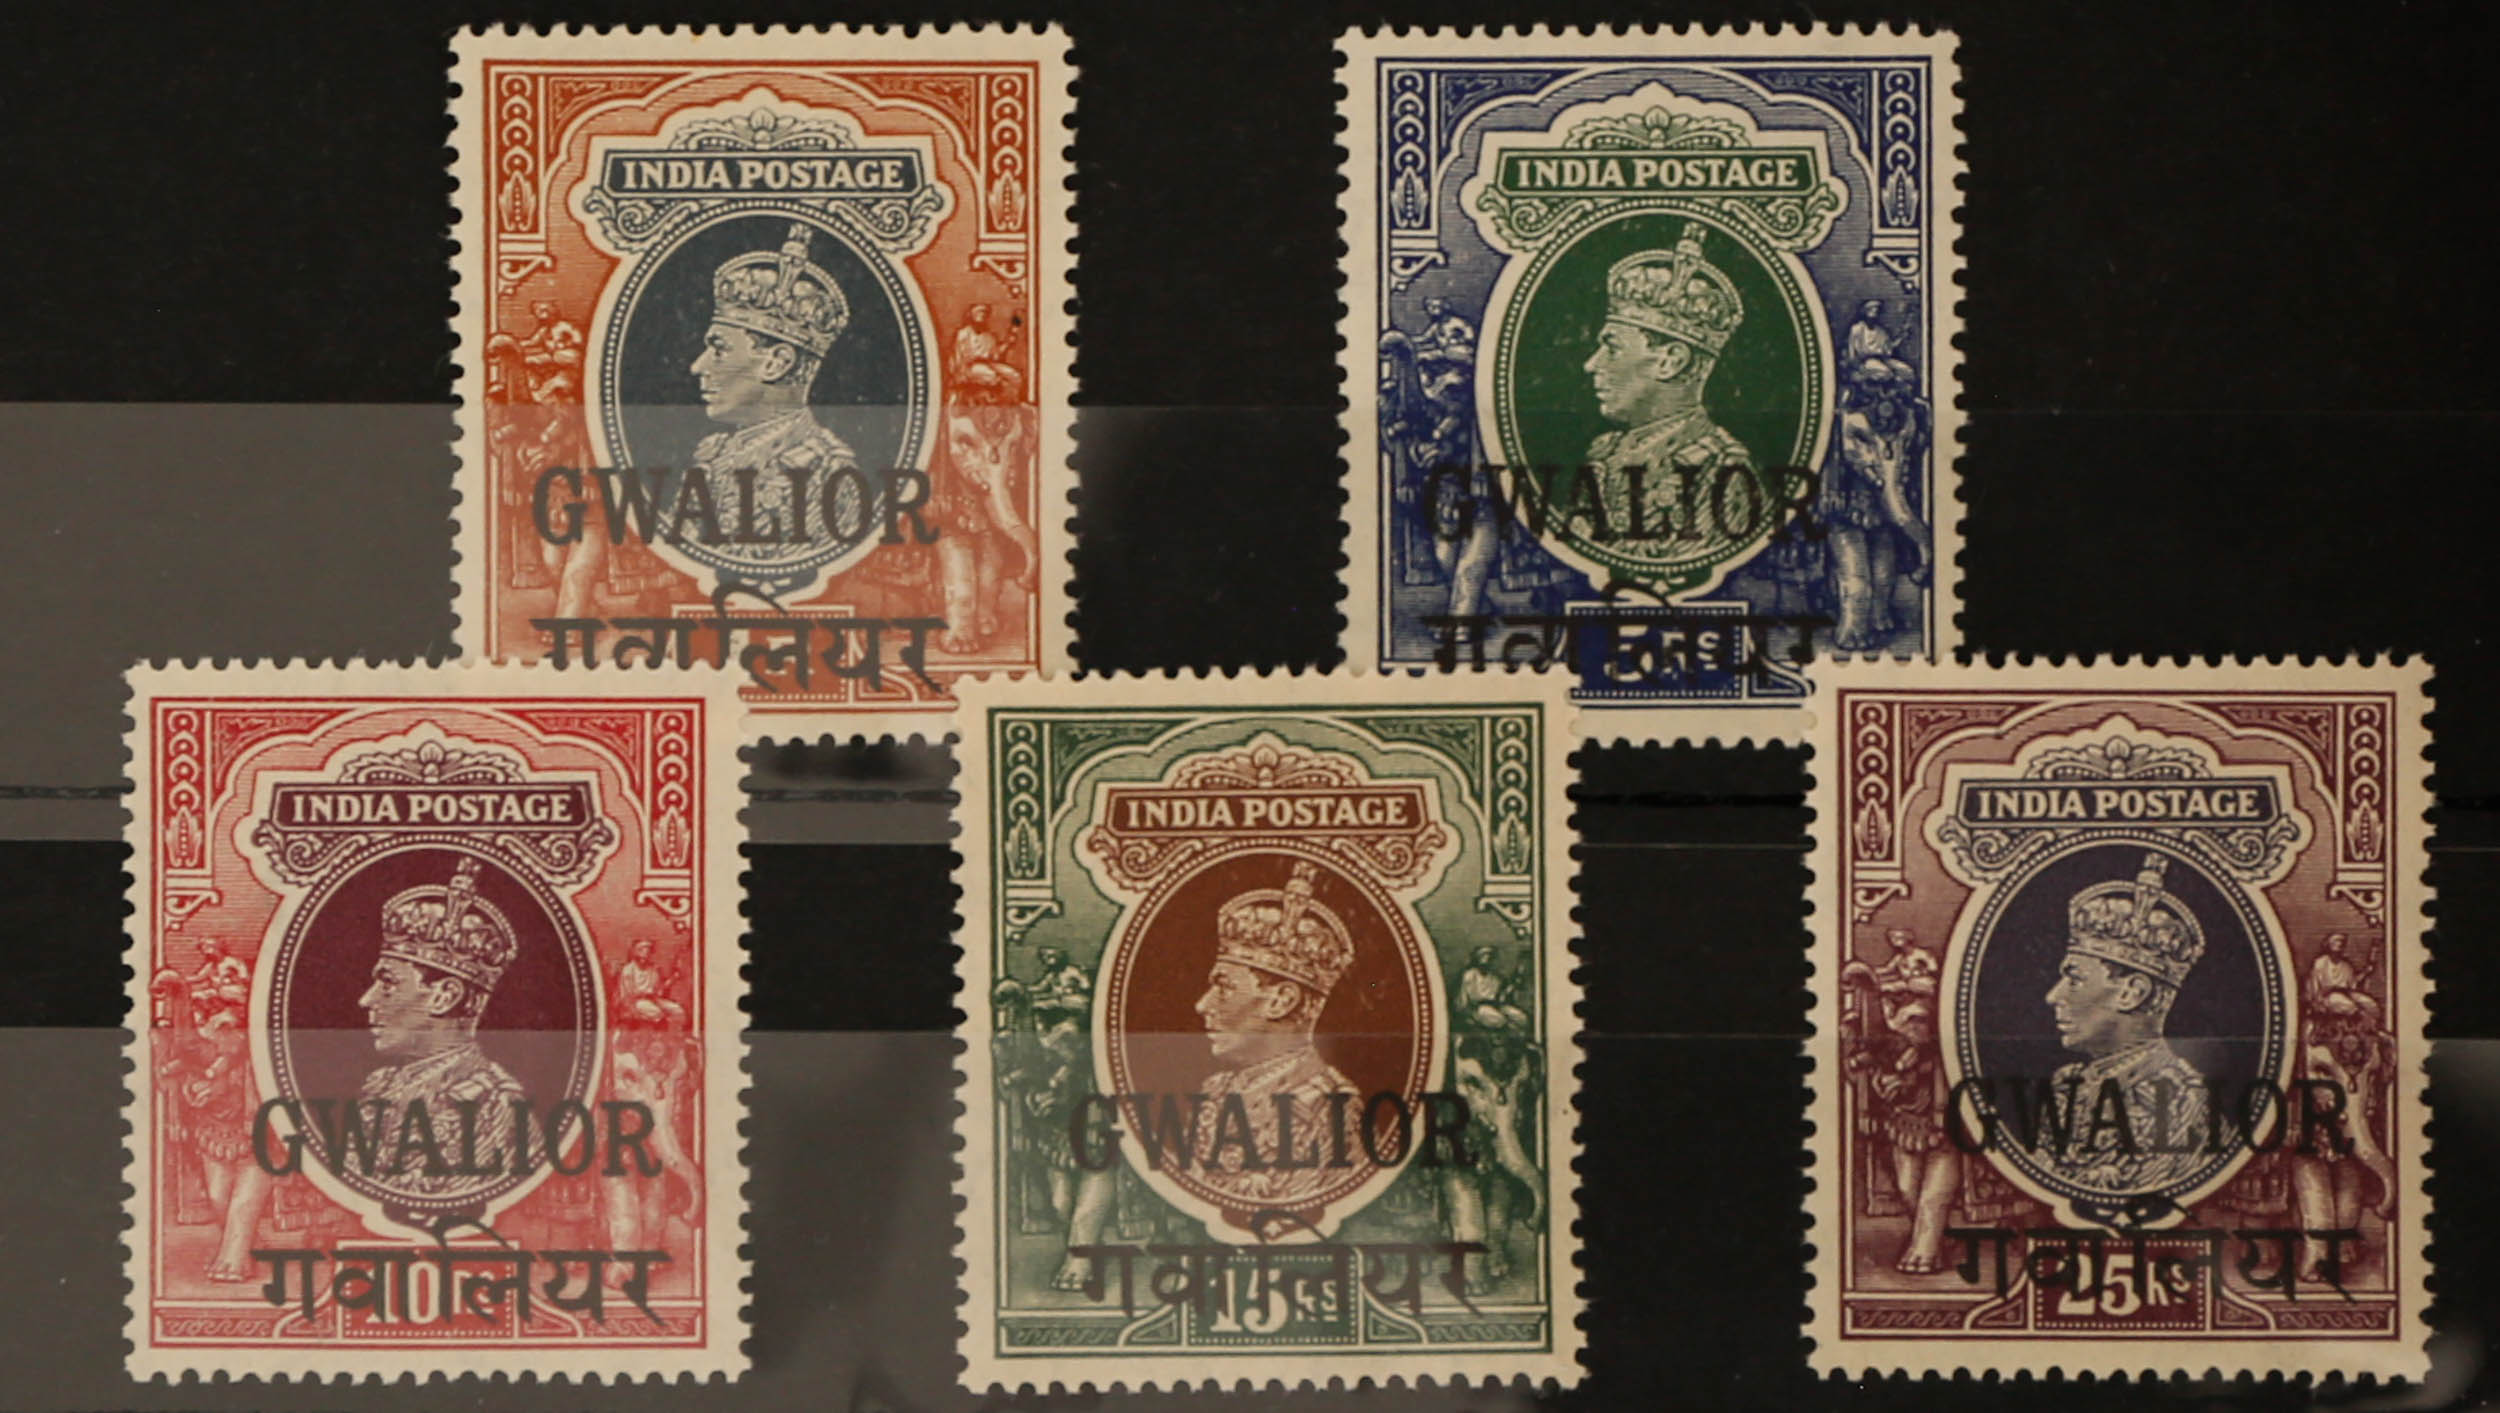 India 1942/48 GWALIOR 1r to 25r values excl. 2r optd with type T 5 UM SG112 and 114/117 Cat. £247